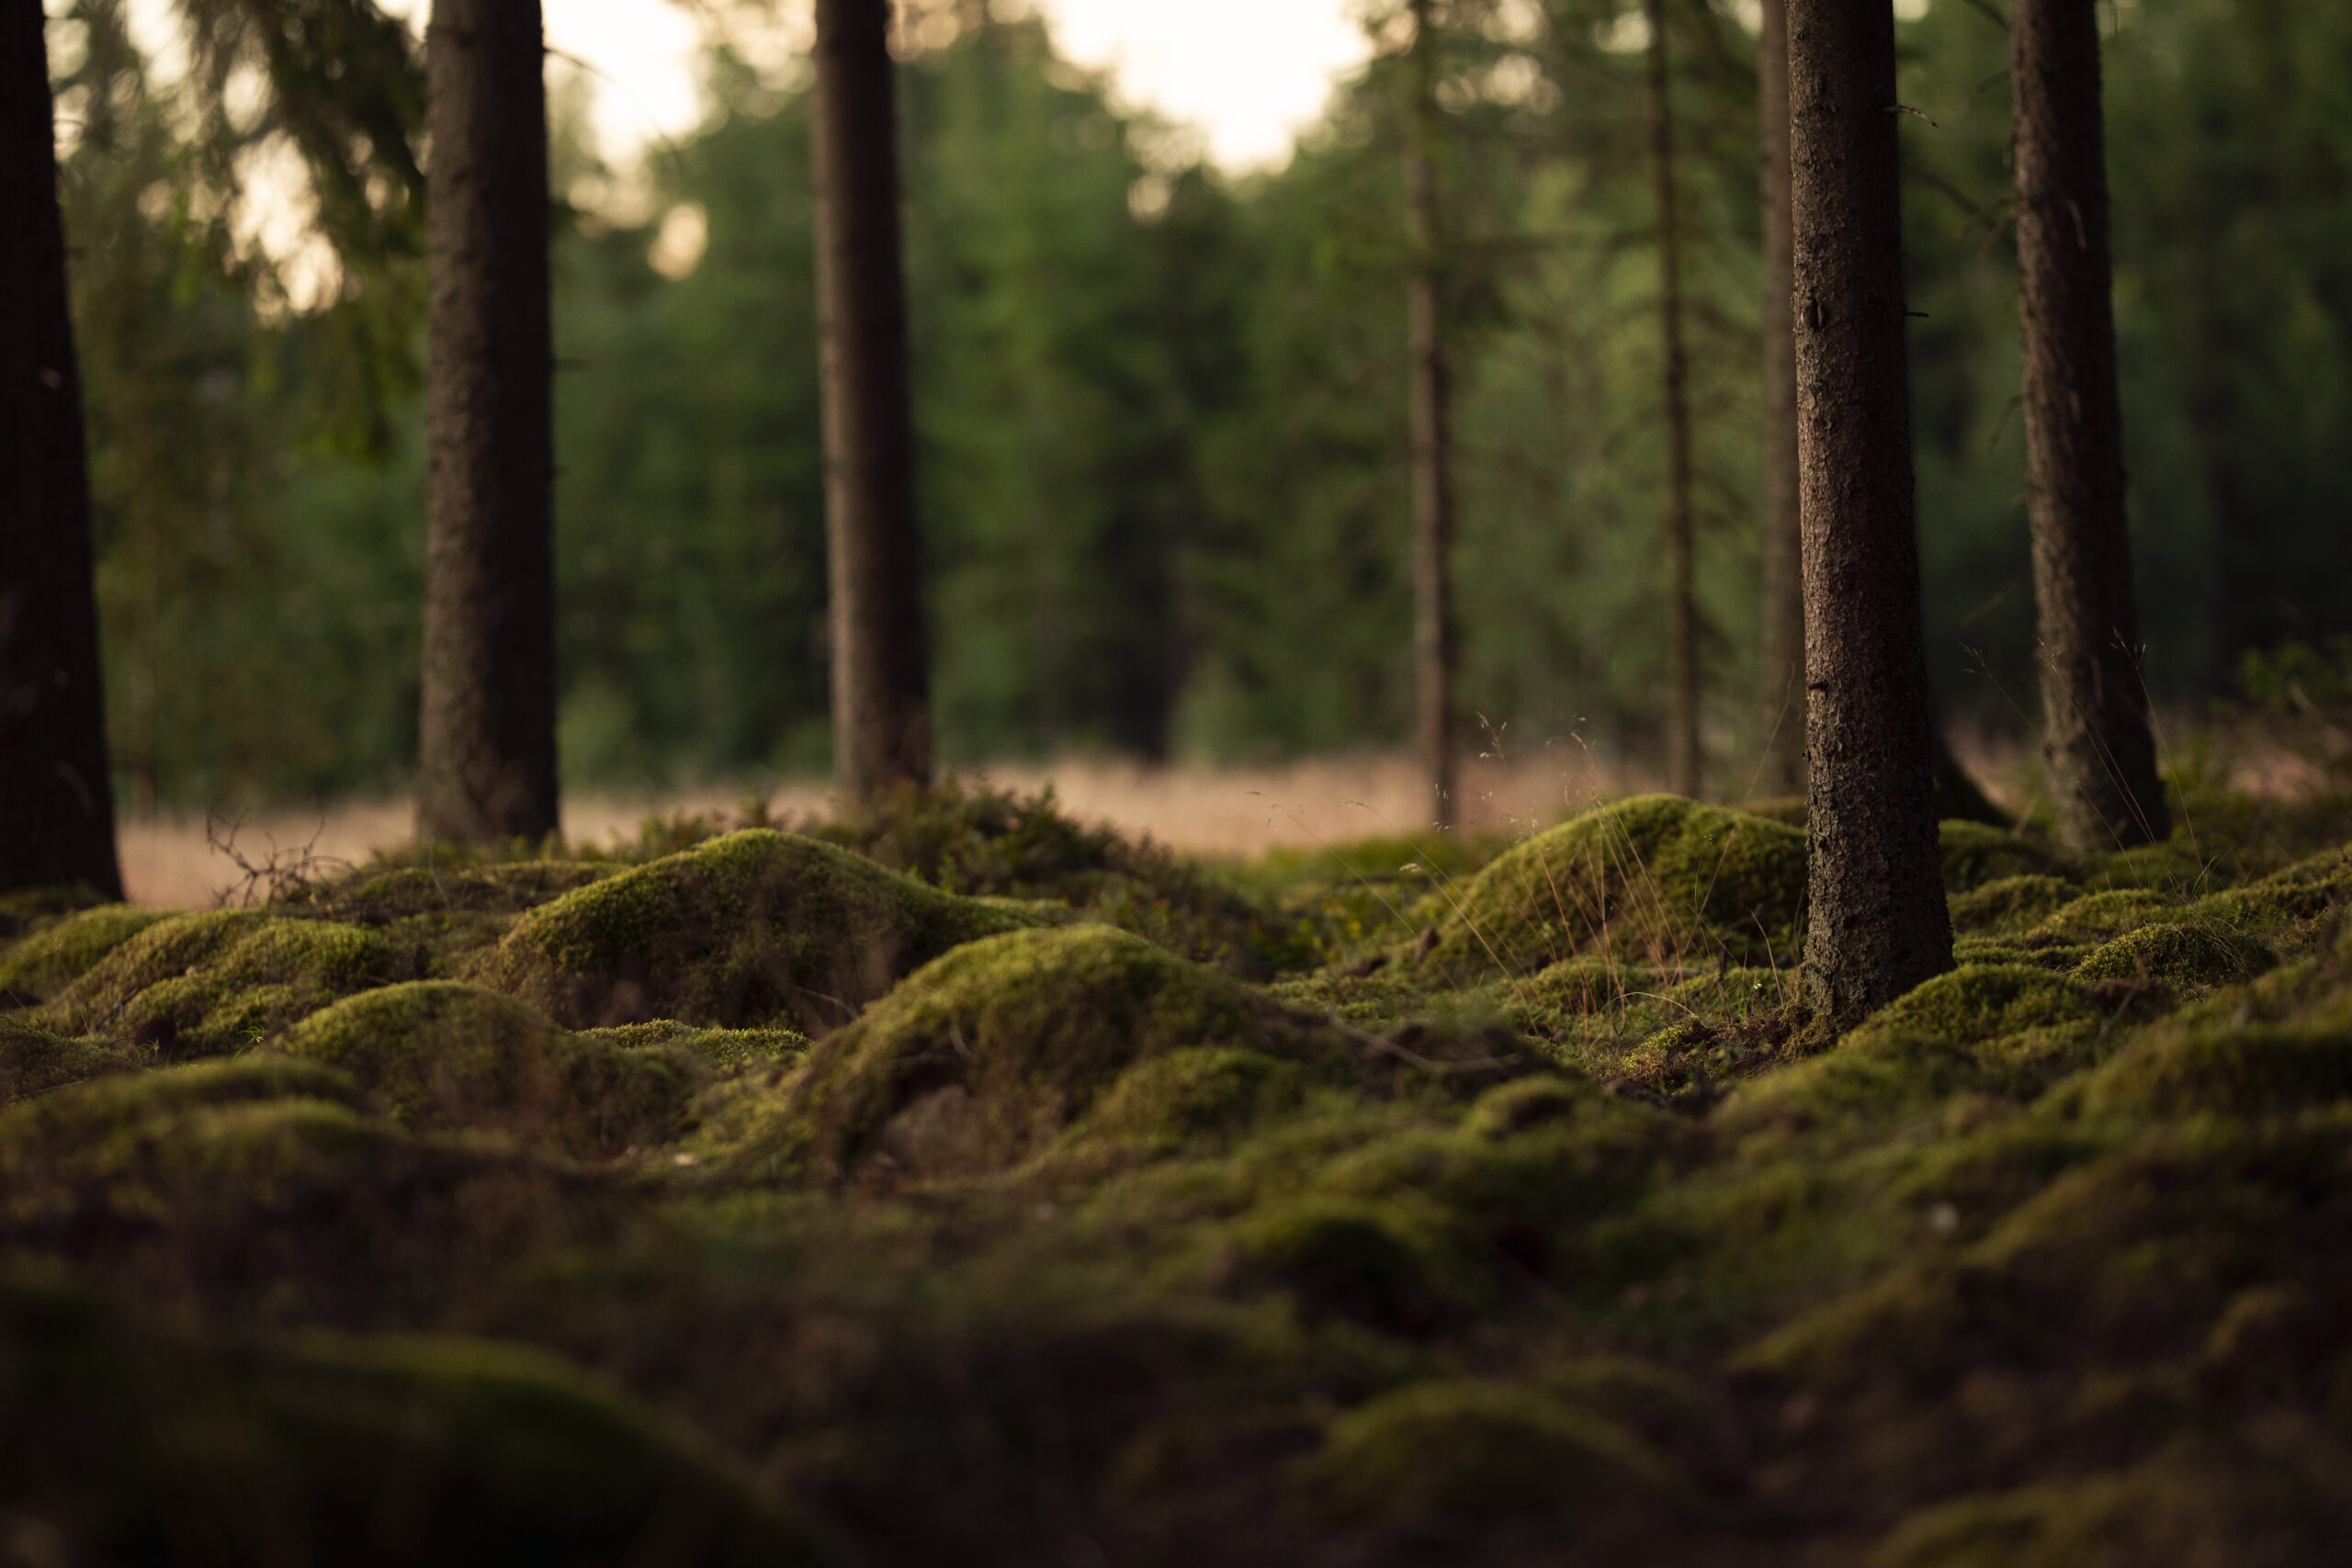 A summer evening in a swedish forest